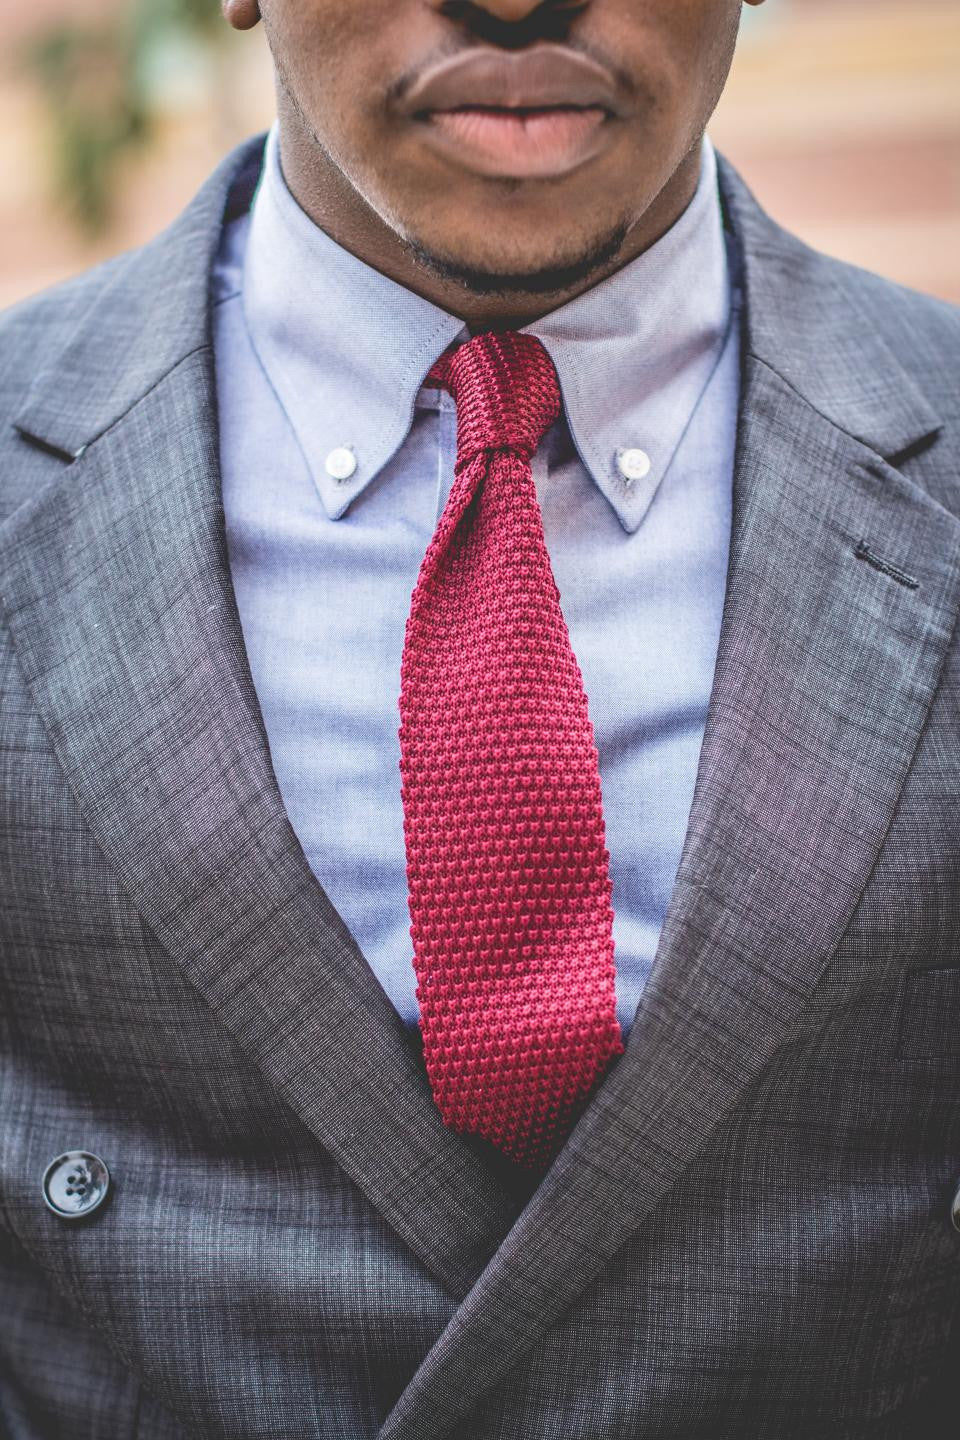 Top 3 Knitted Ties to Transition from Winter to Spring